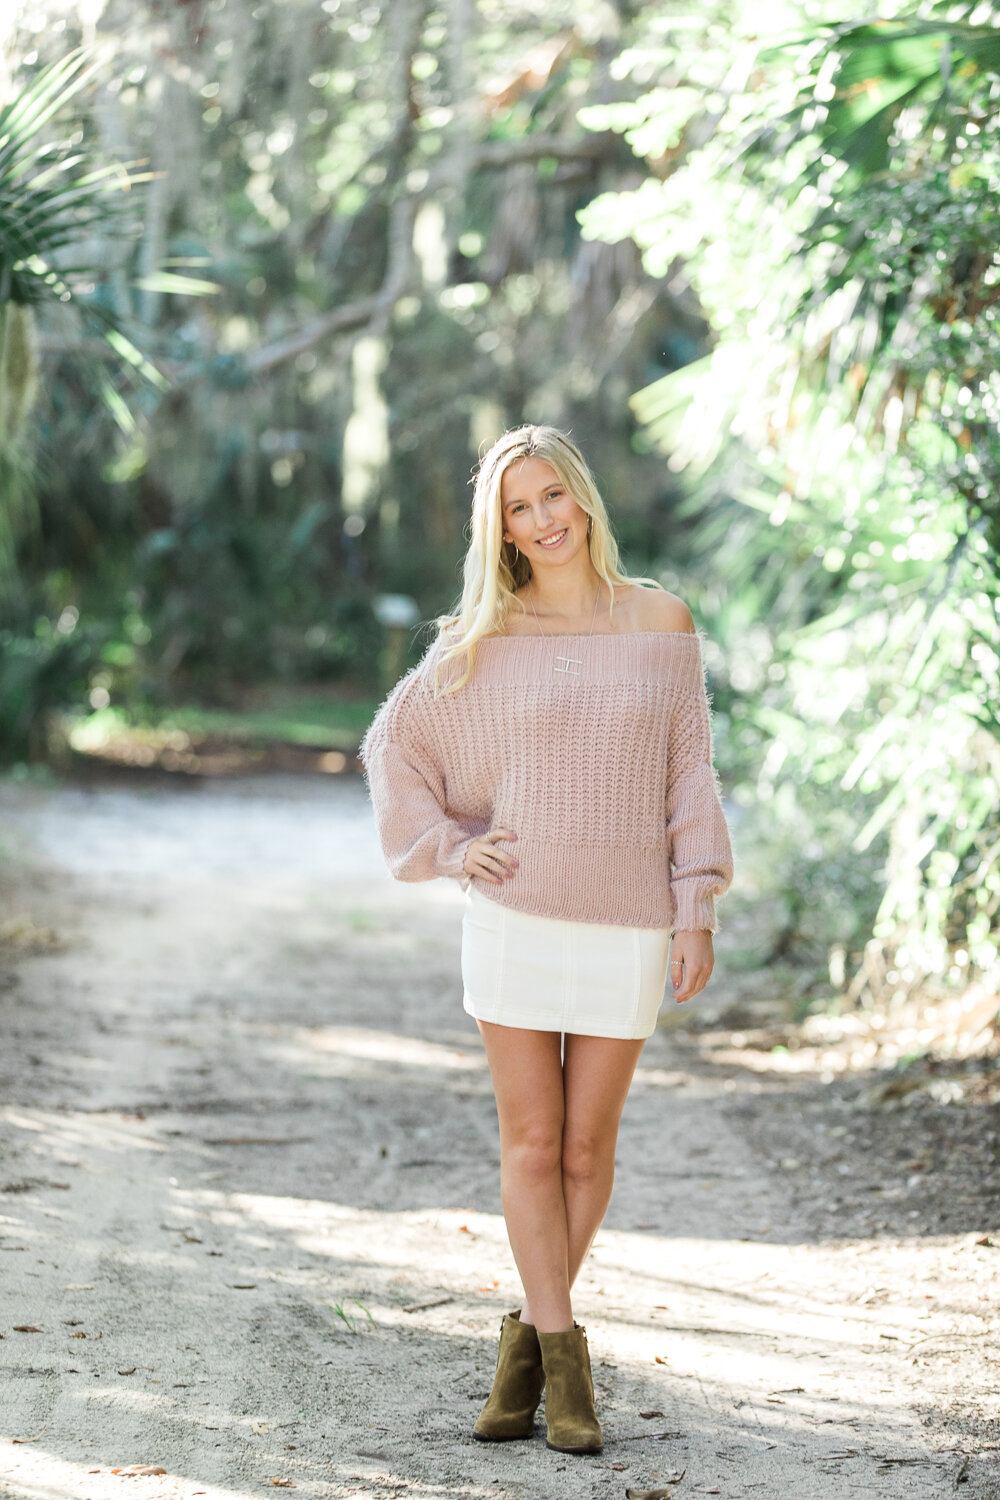 High school senior session in Hanna park. Posing and outfit ideas for seniors.